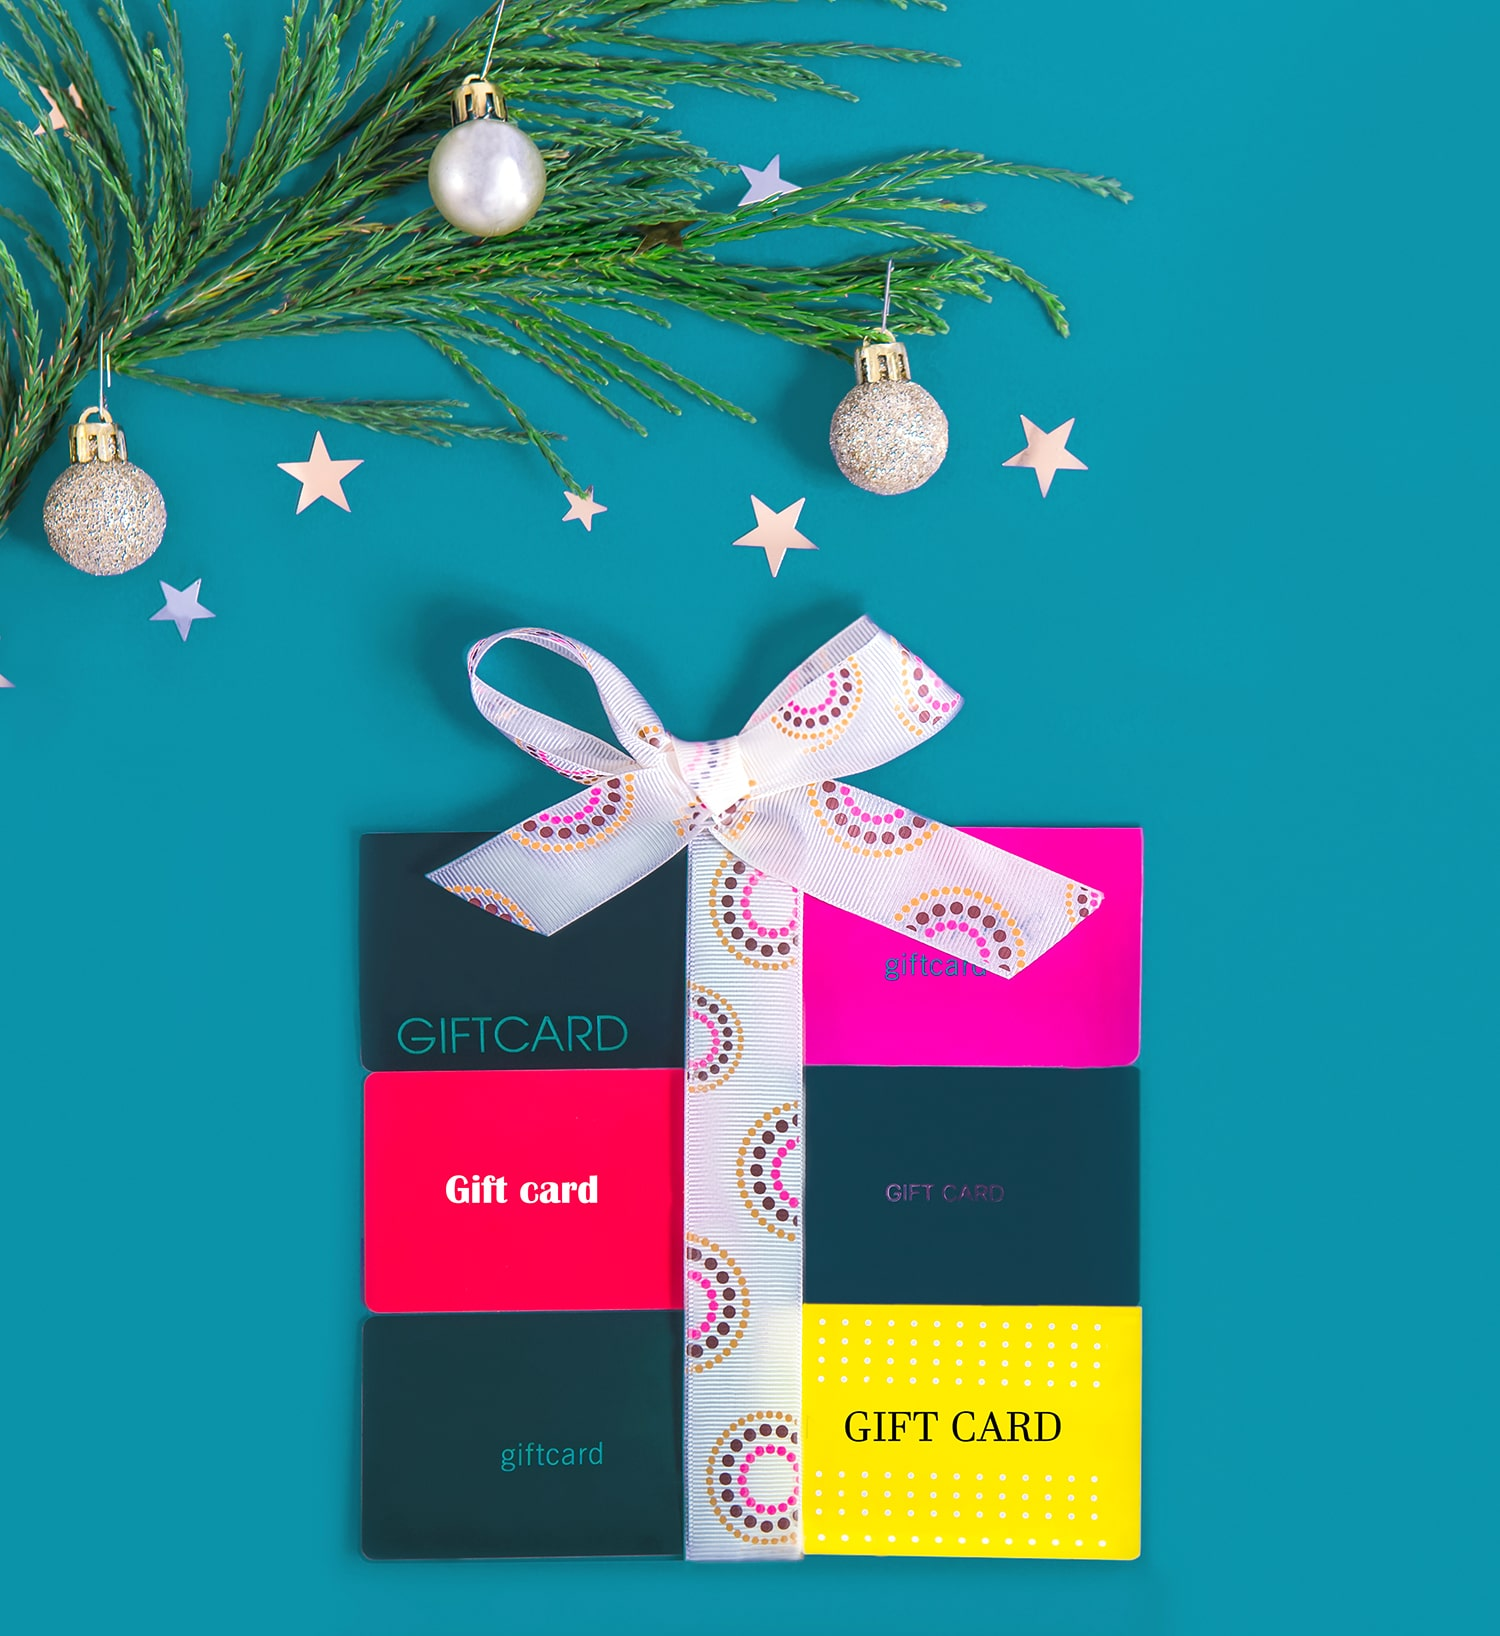 Flat lay gift box shape made of shop gift cards and tied with a ribbon on a blue background with Christmas tree branch